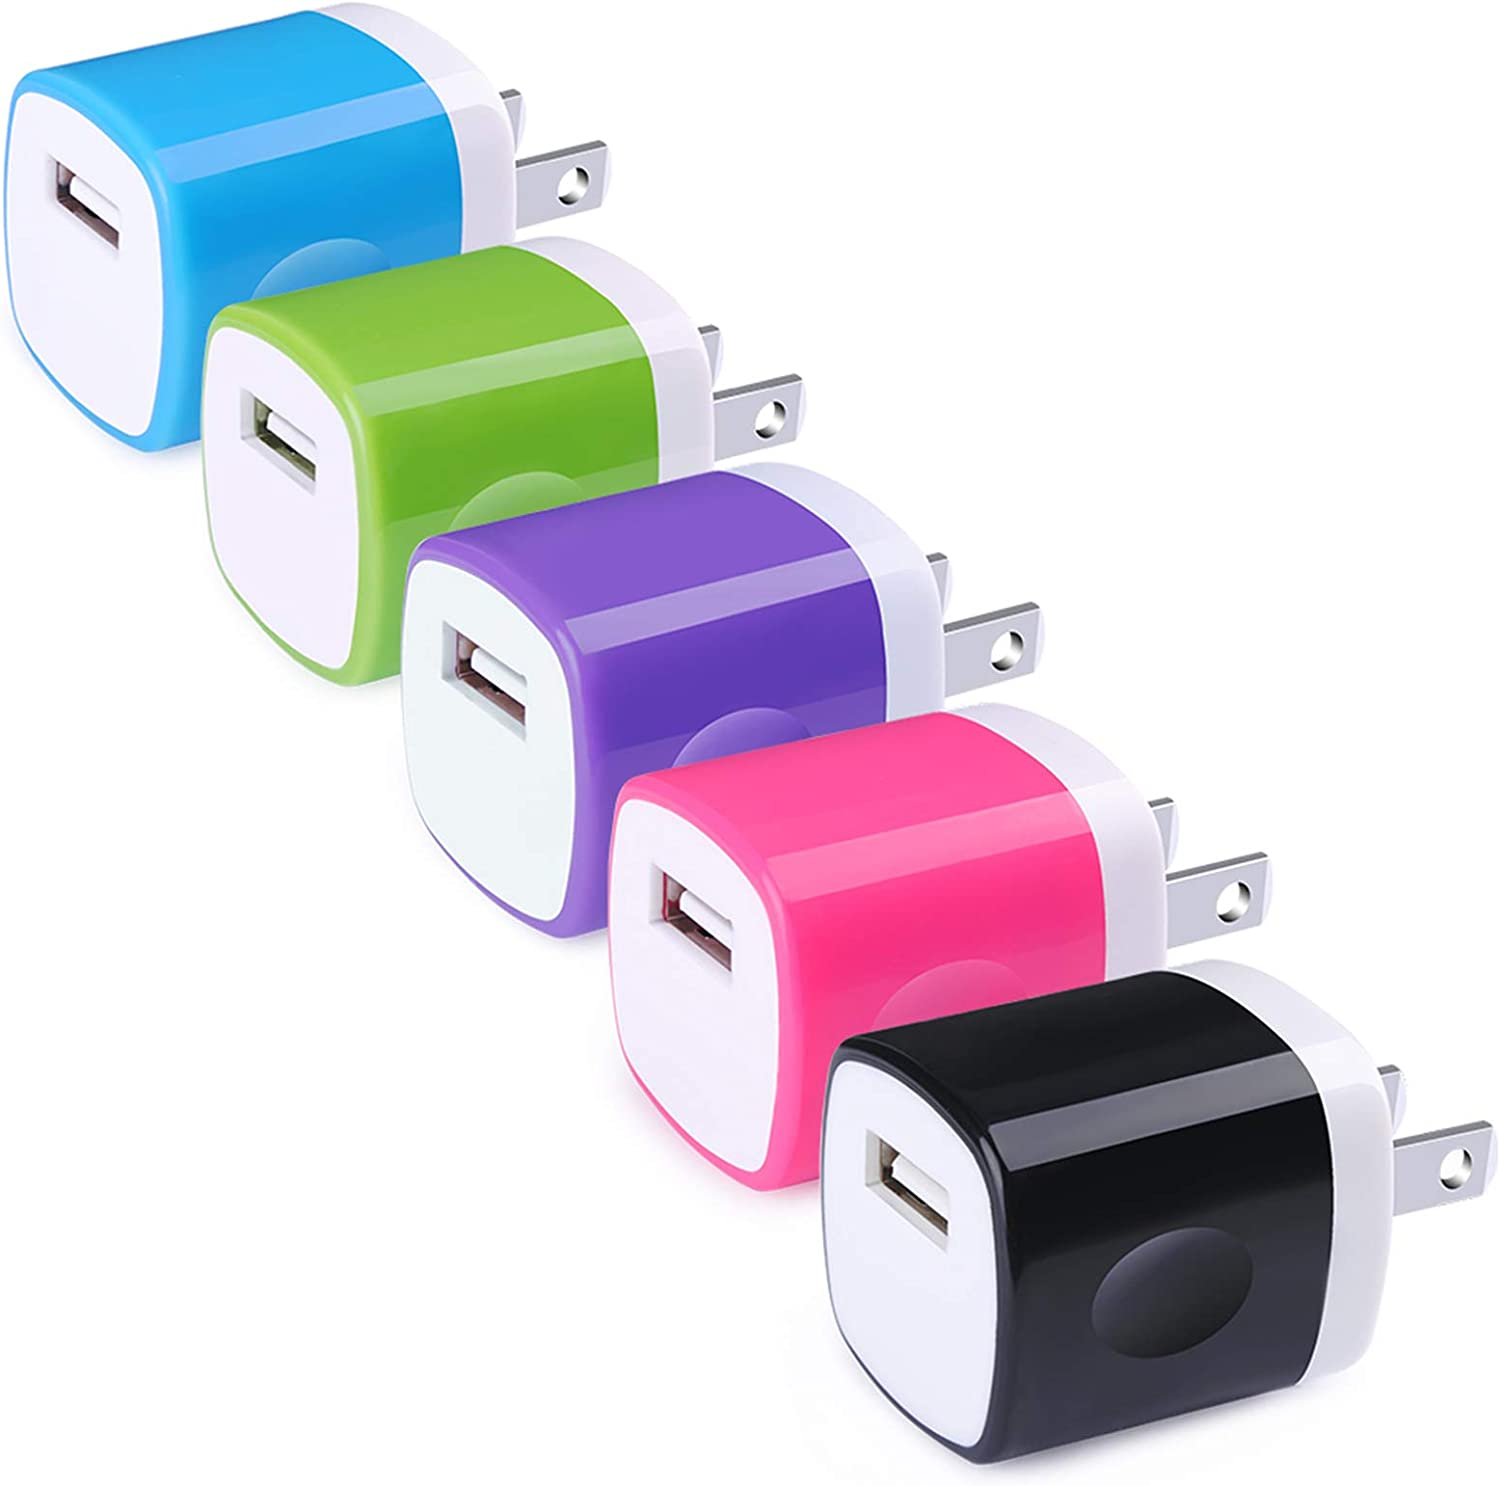 Wall Charger Block, Hootek USB Plug 5Pack 1A/5V Wall Charger Plug Charging Cube Brick Charger Box Compatible iPhone 11 XS Max X 8 7 6S Plus, iPad, Samsung Galaxy, LG, HTC, Moto, Android Phone Charger